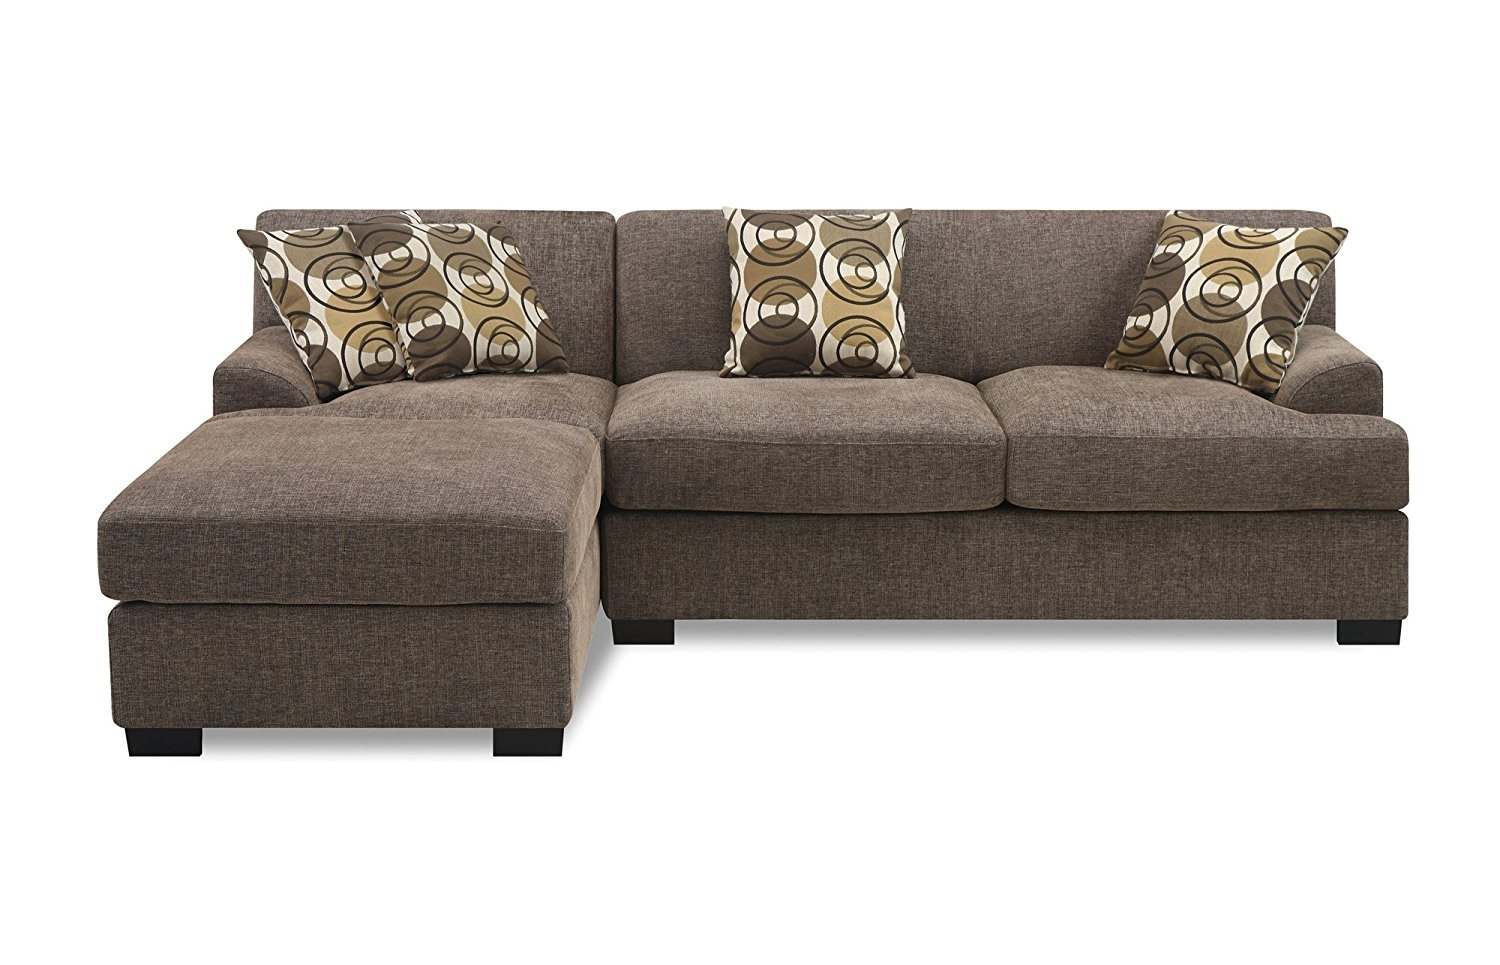 Fancy Loveseat Sectional Sofa 81 In Table And Chair Inspiration With for Sectional Sofas Under 1500 (Image 3 of 10)